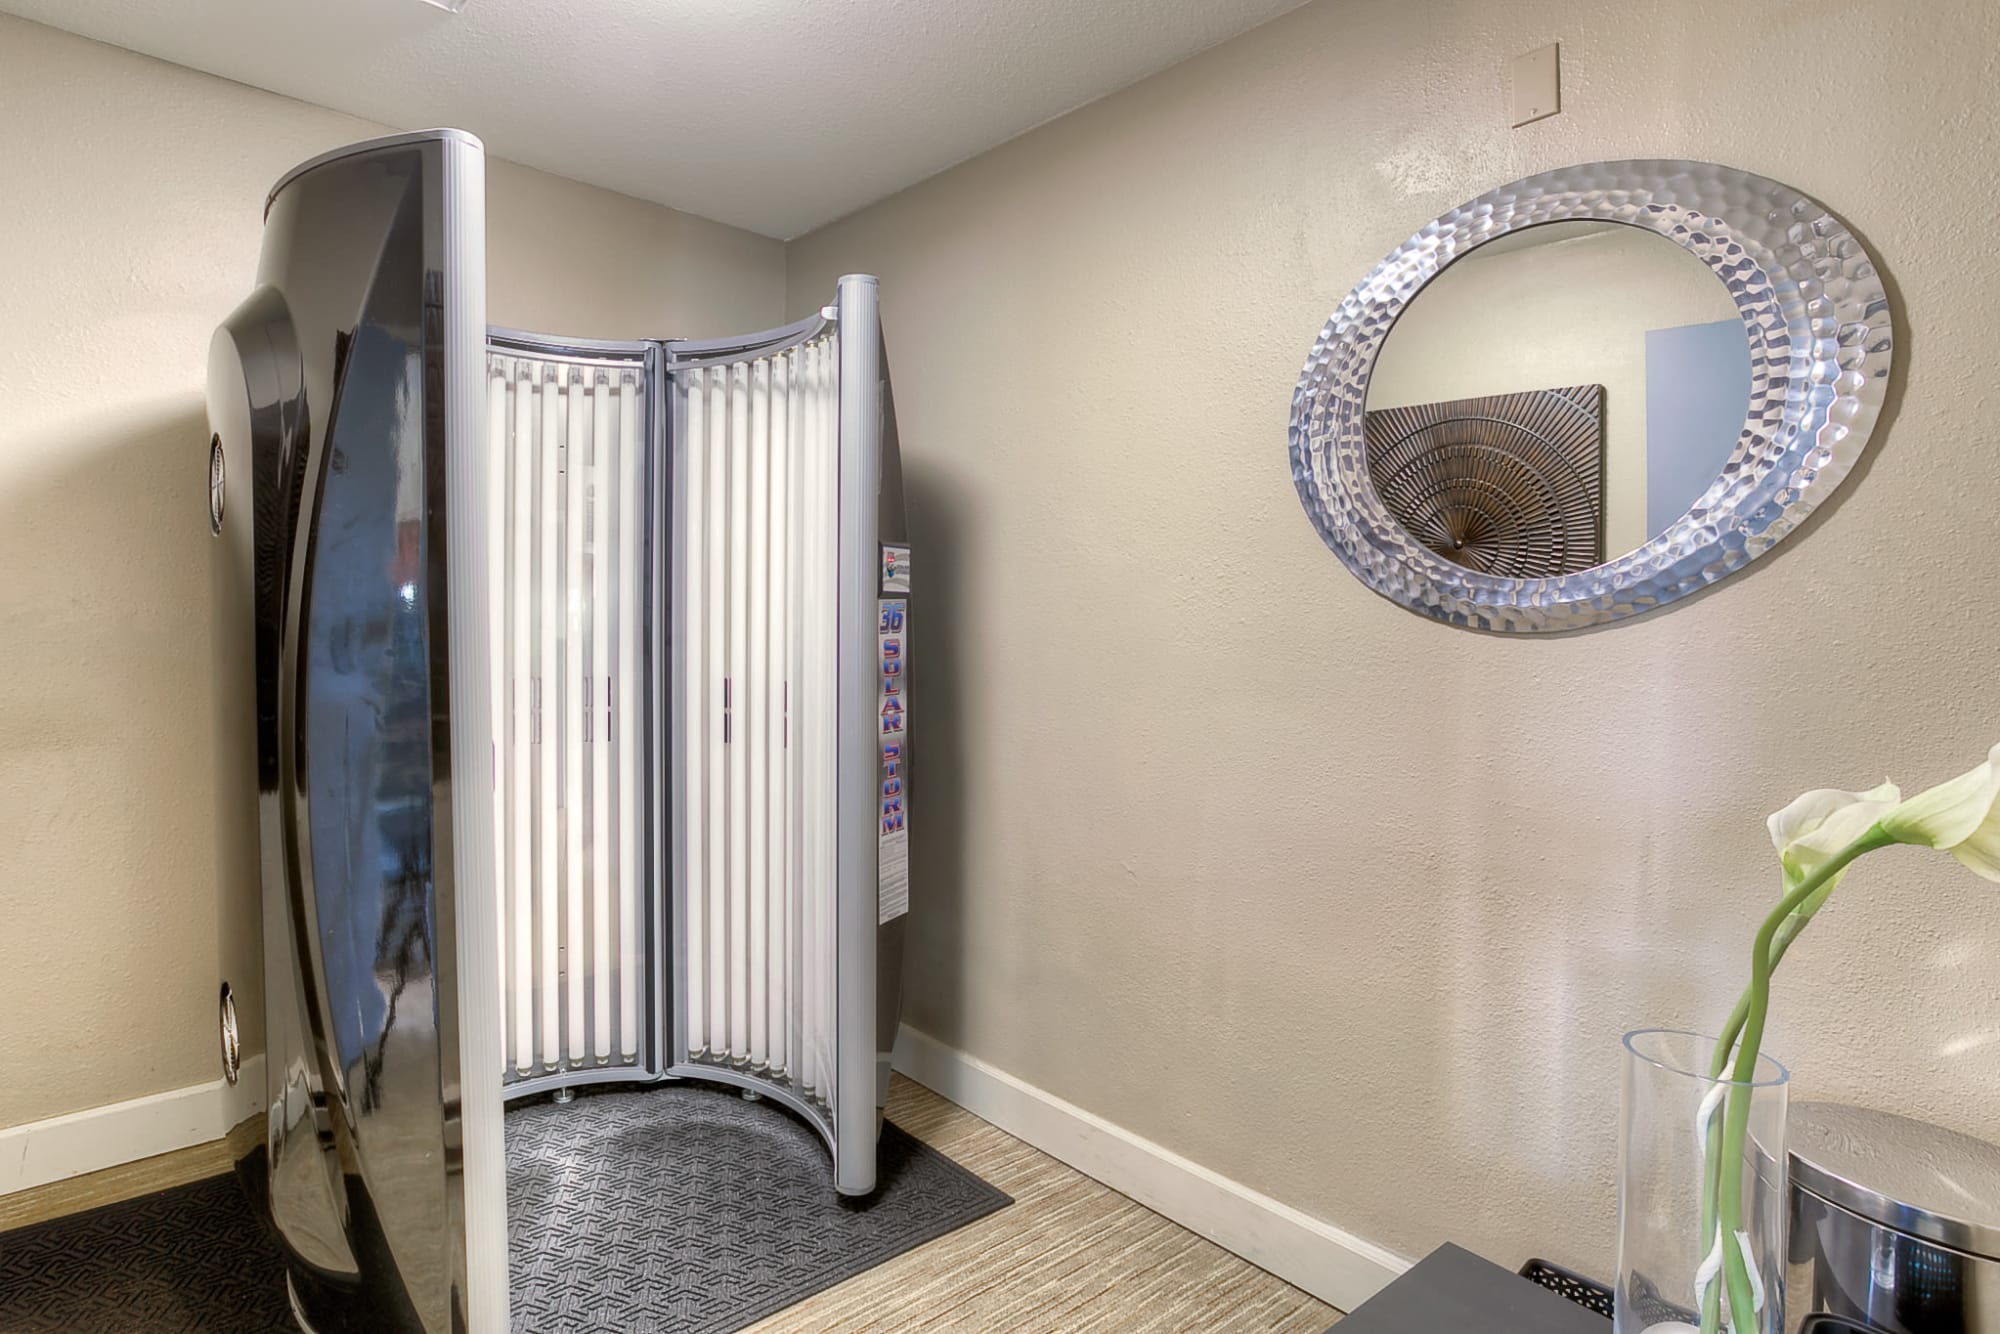 Tanning booth at Newport Crossing Apartments